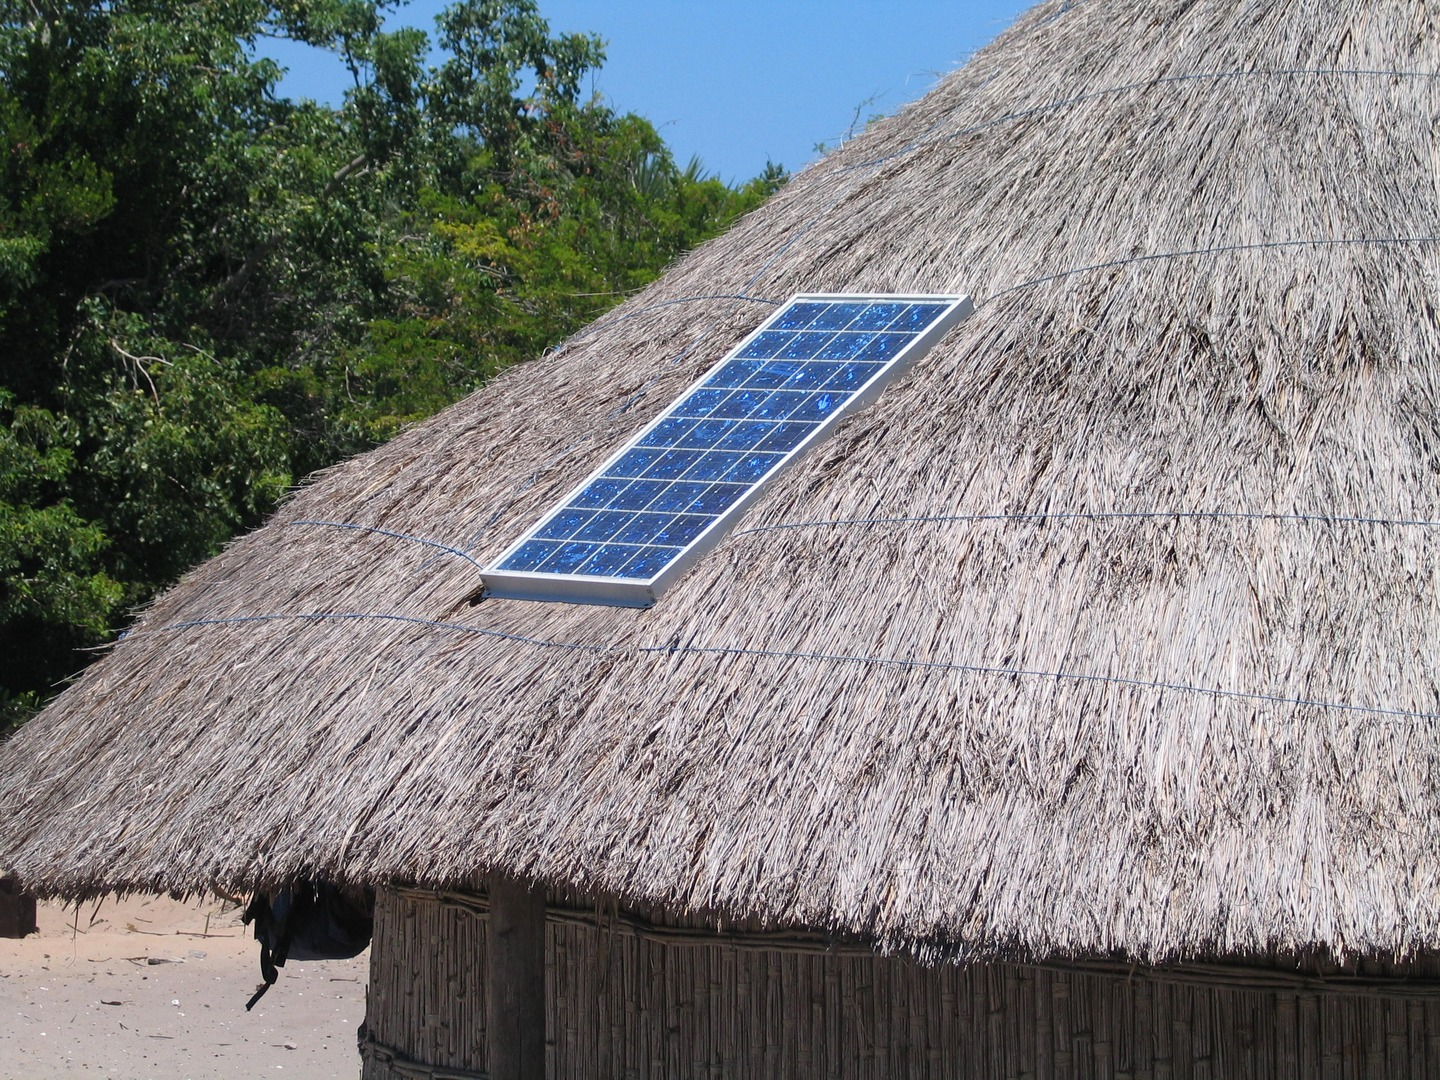 Rooftop solar panels. Climate change is best tackled through lots of small-scale solutions